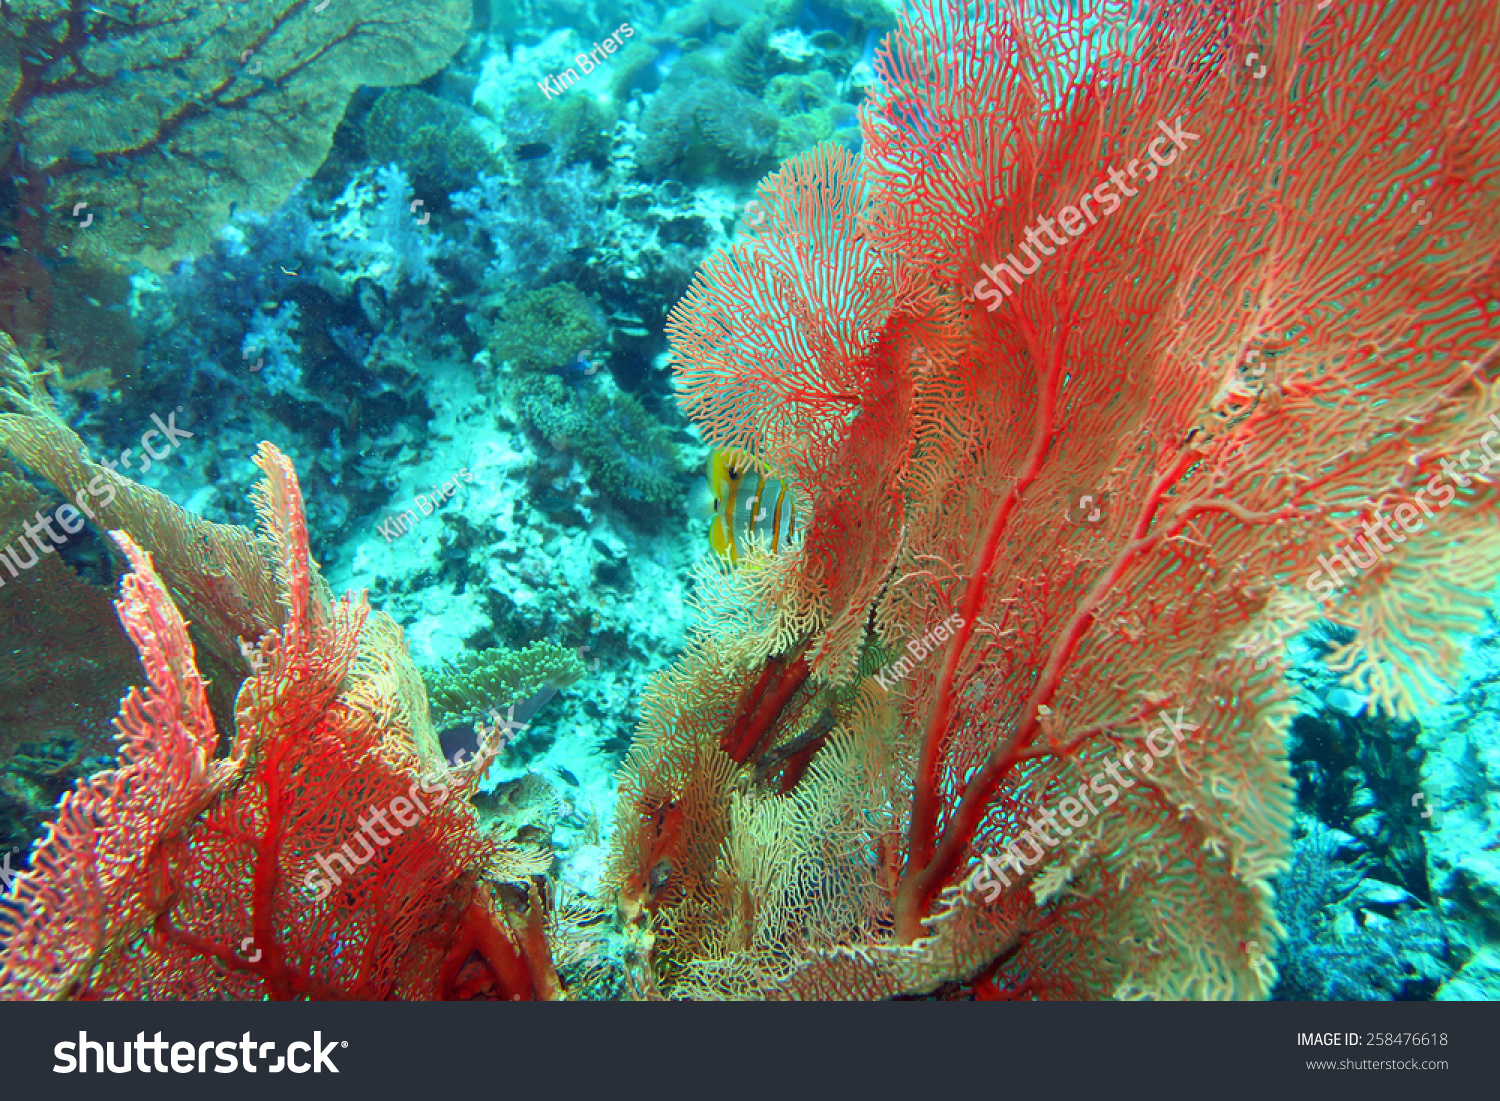 Scuba diving coral reef thailand stock photo 258476618 shutterstock - Where to dive in thailand ...